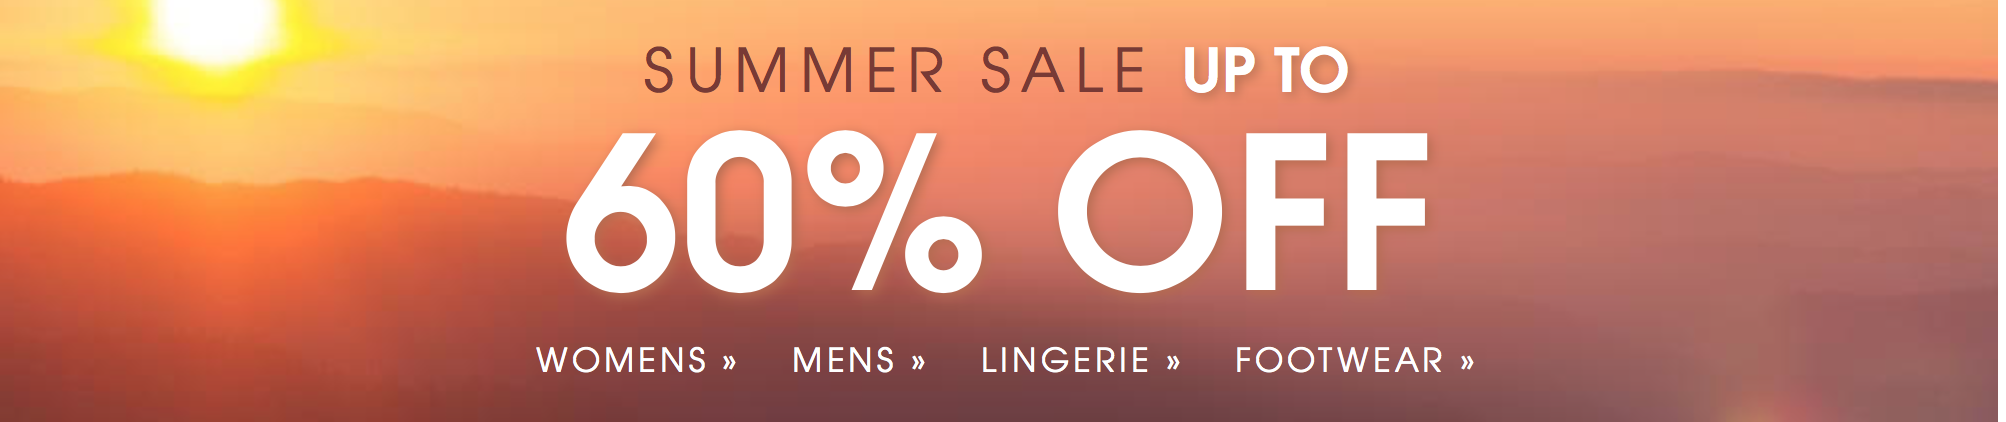 Marisota: Sale up to 60% off women, mens, lingerie and footwear lines